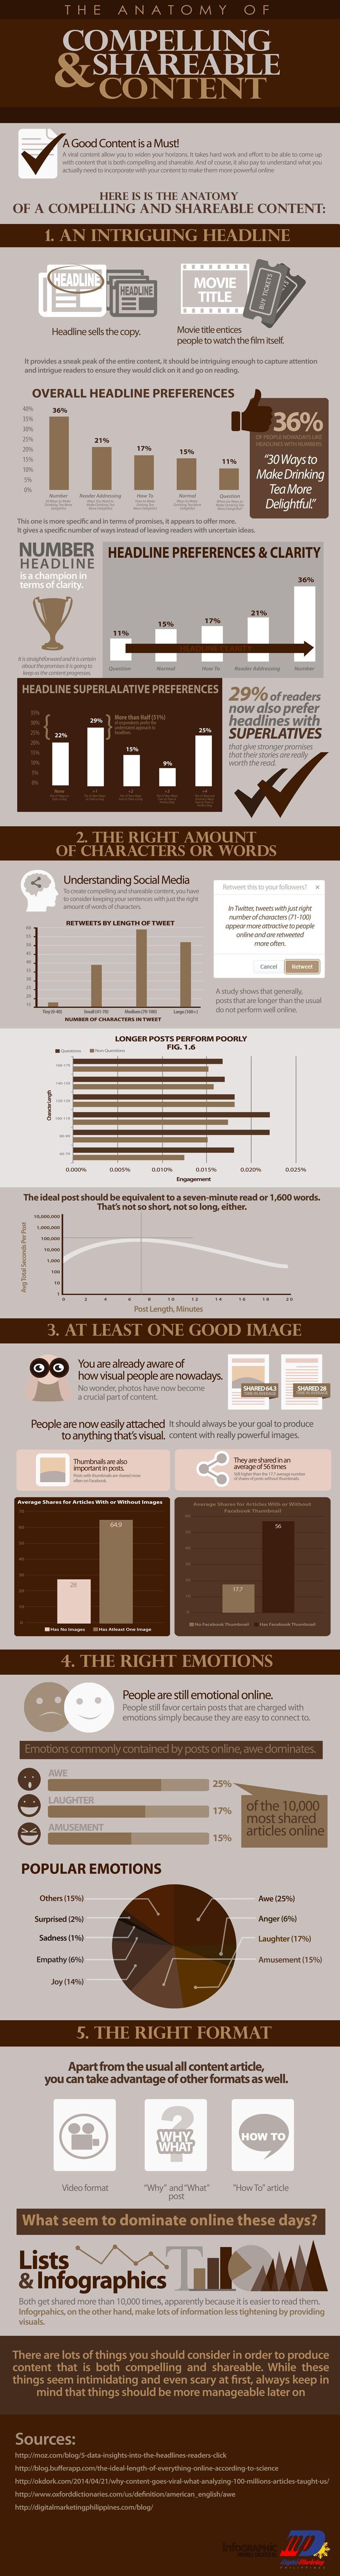 The Anatomy of Shareable Content - infographic